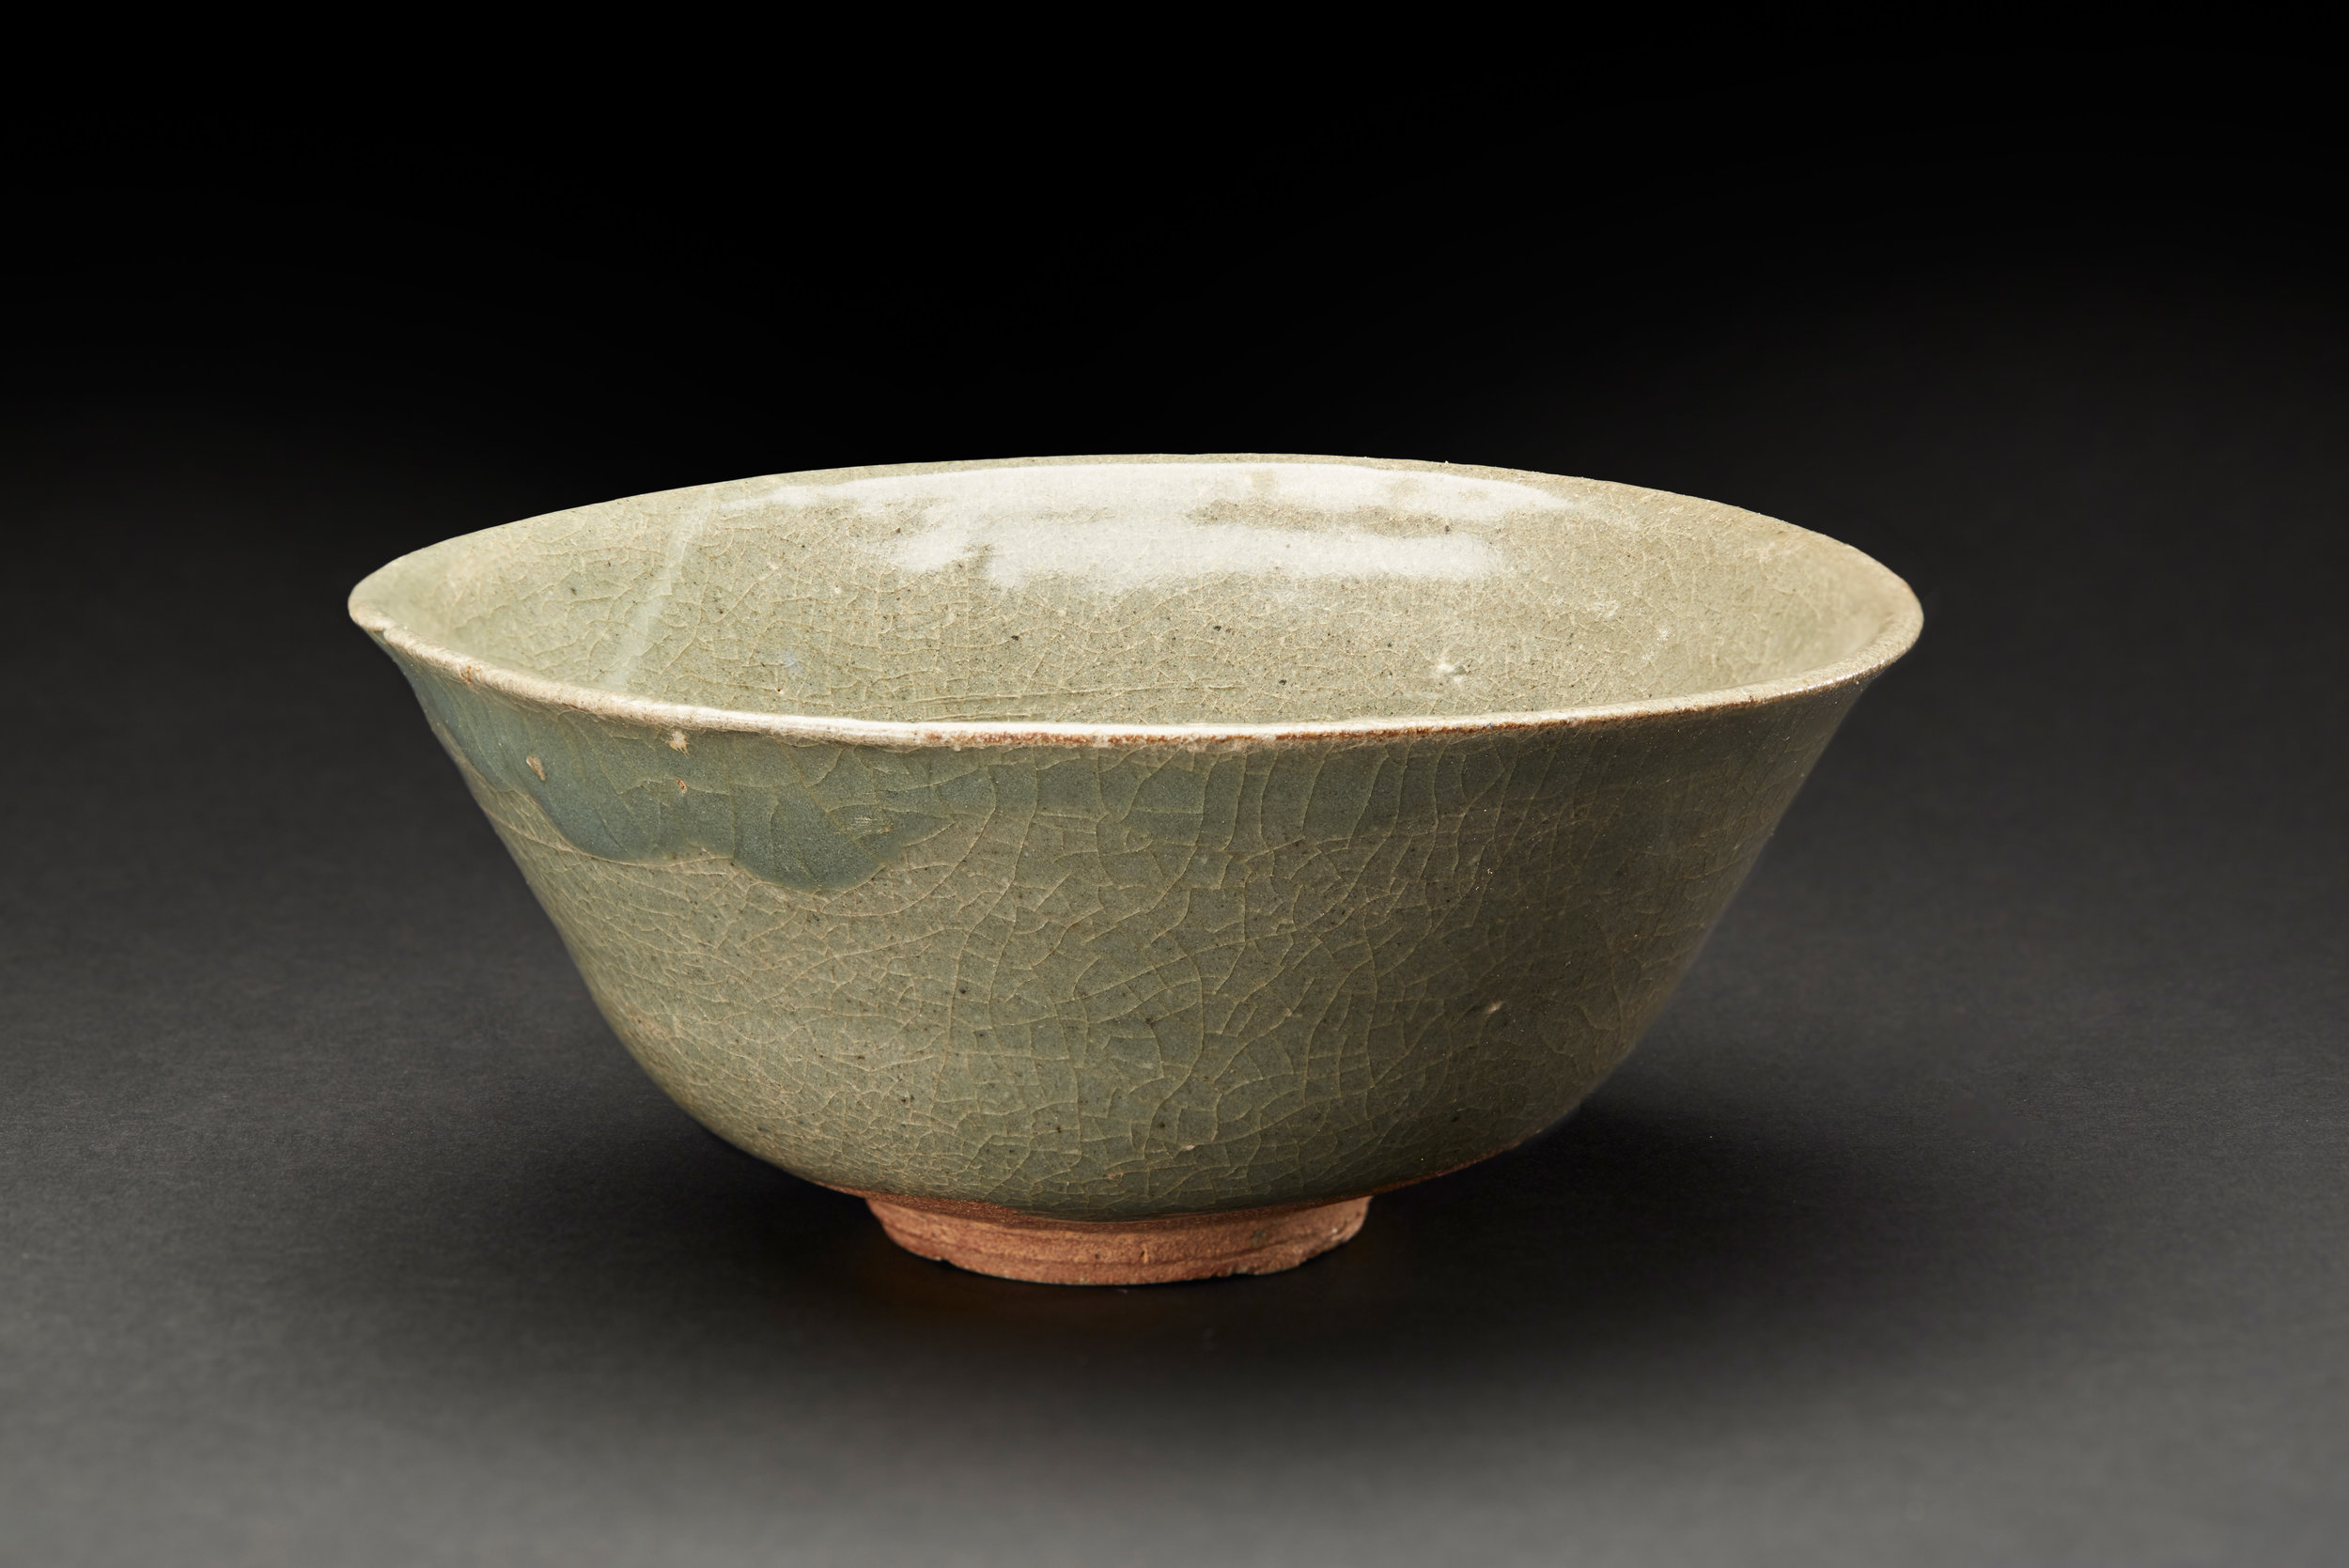 Korean Ceramics  Jade Green Punch Ong Bowl  , C. Early Chosun Period (15-16th Century) Course Stoneware 7 x 3 inches 17.8 x 7.6 cm KCer 4